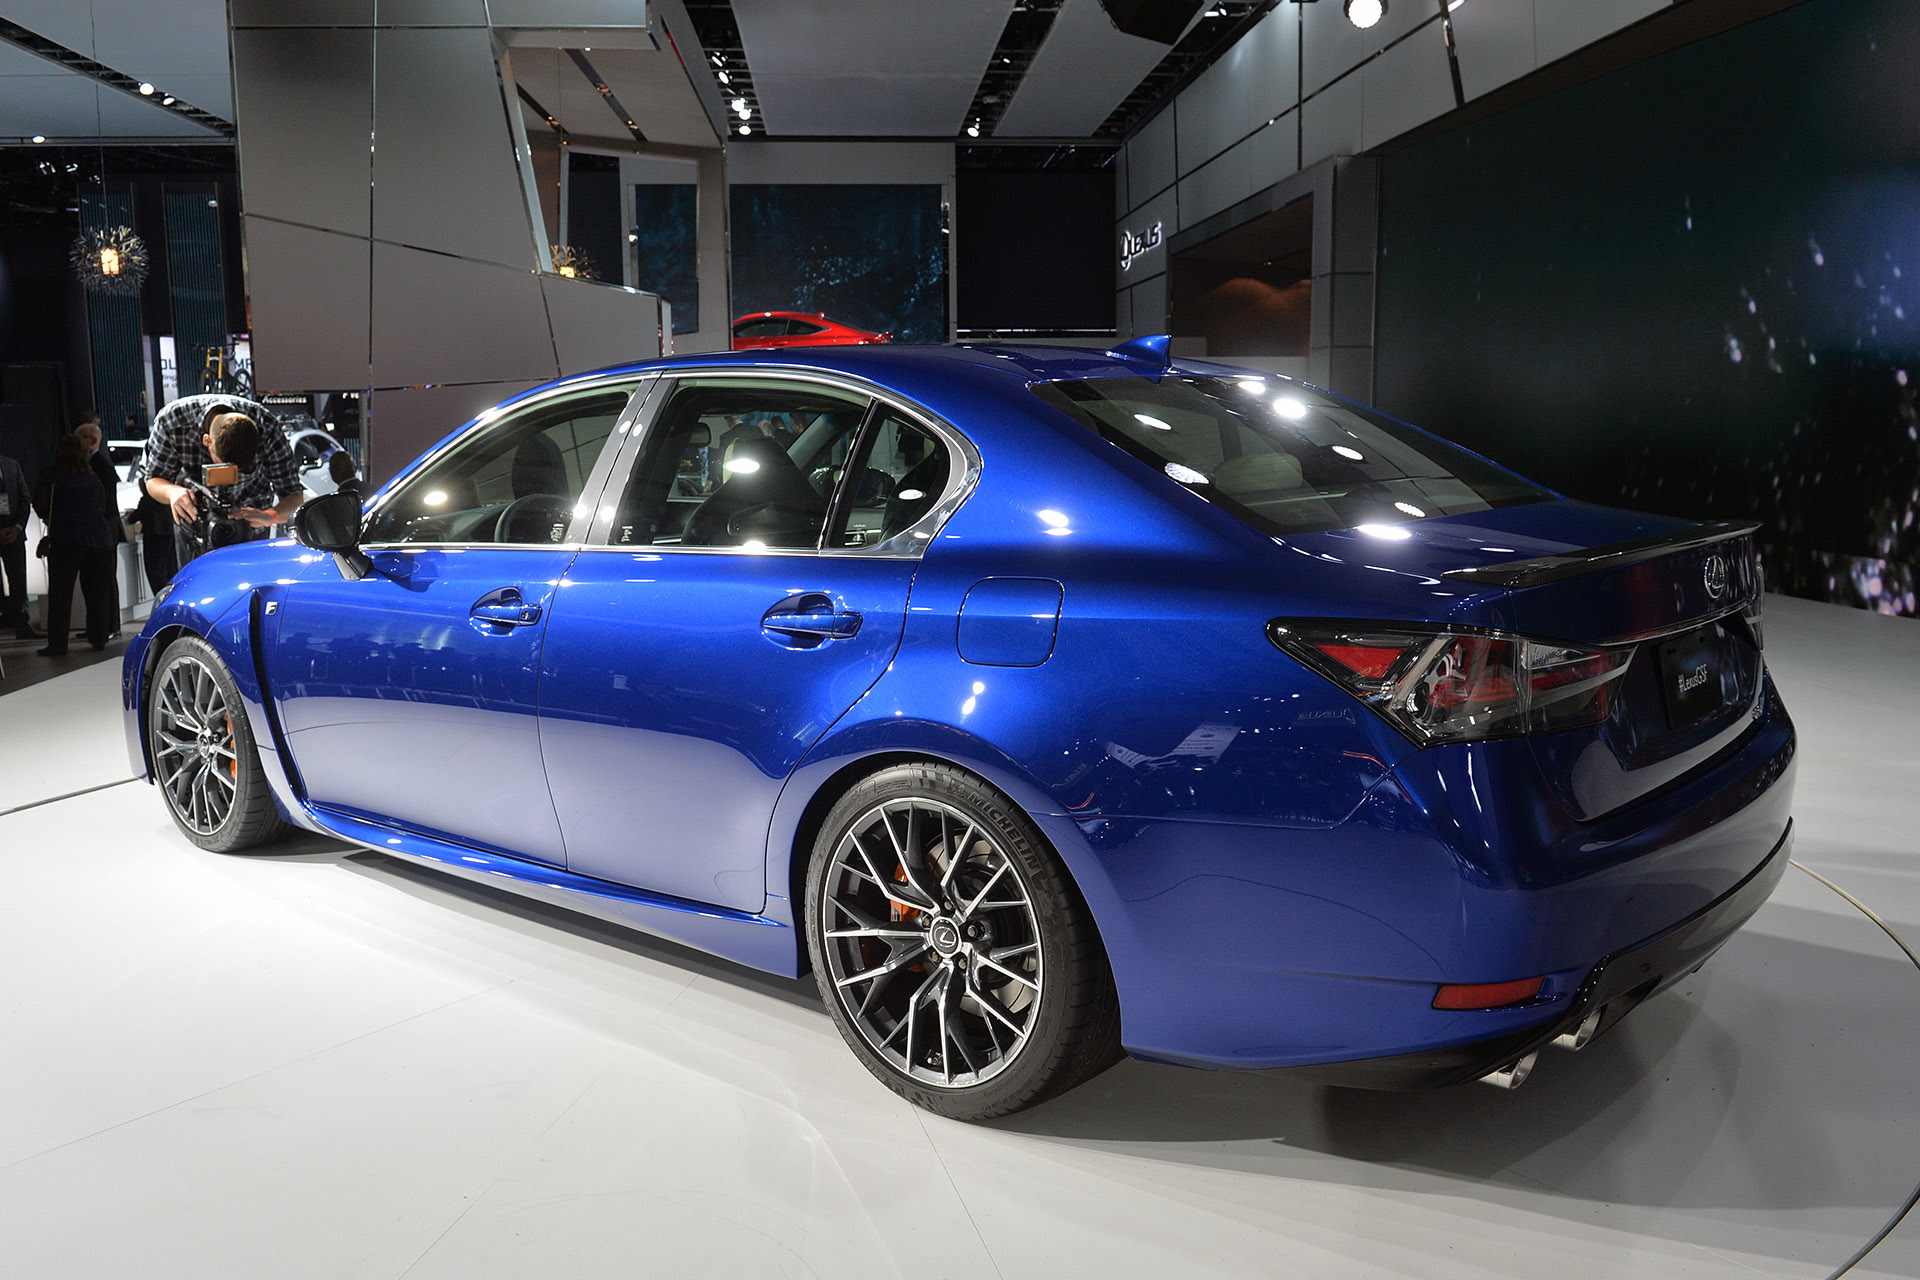 2016 Lexus GS-F Has Less HP Than BMW M5, E63 AMG And CTS-V